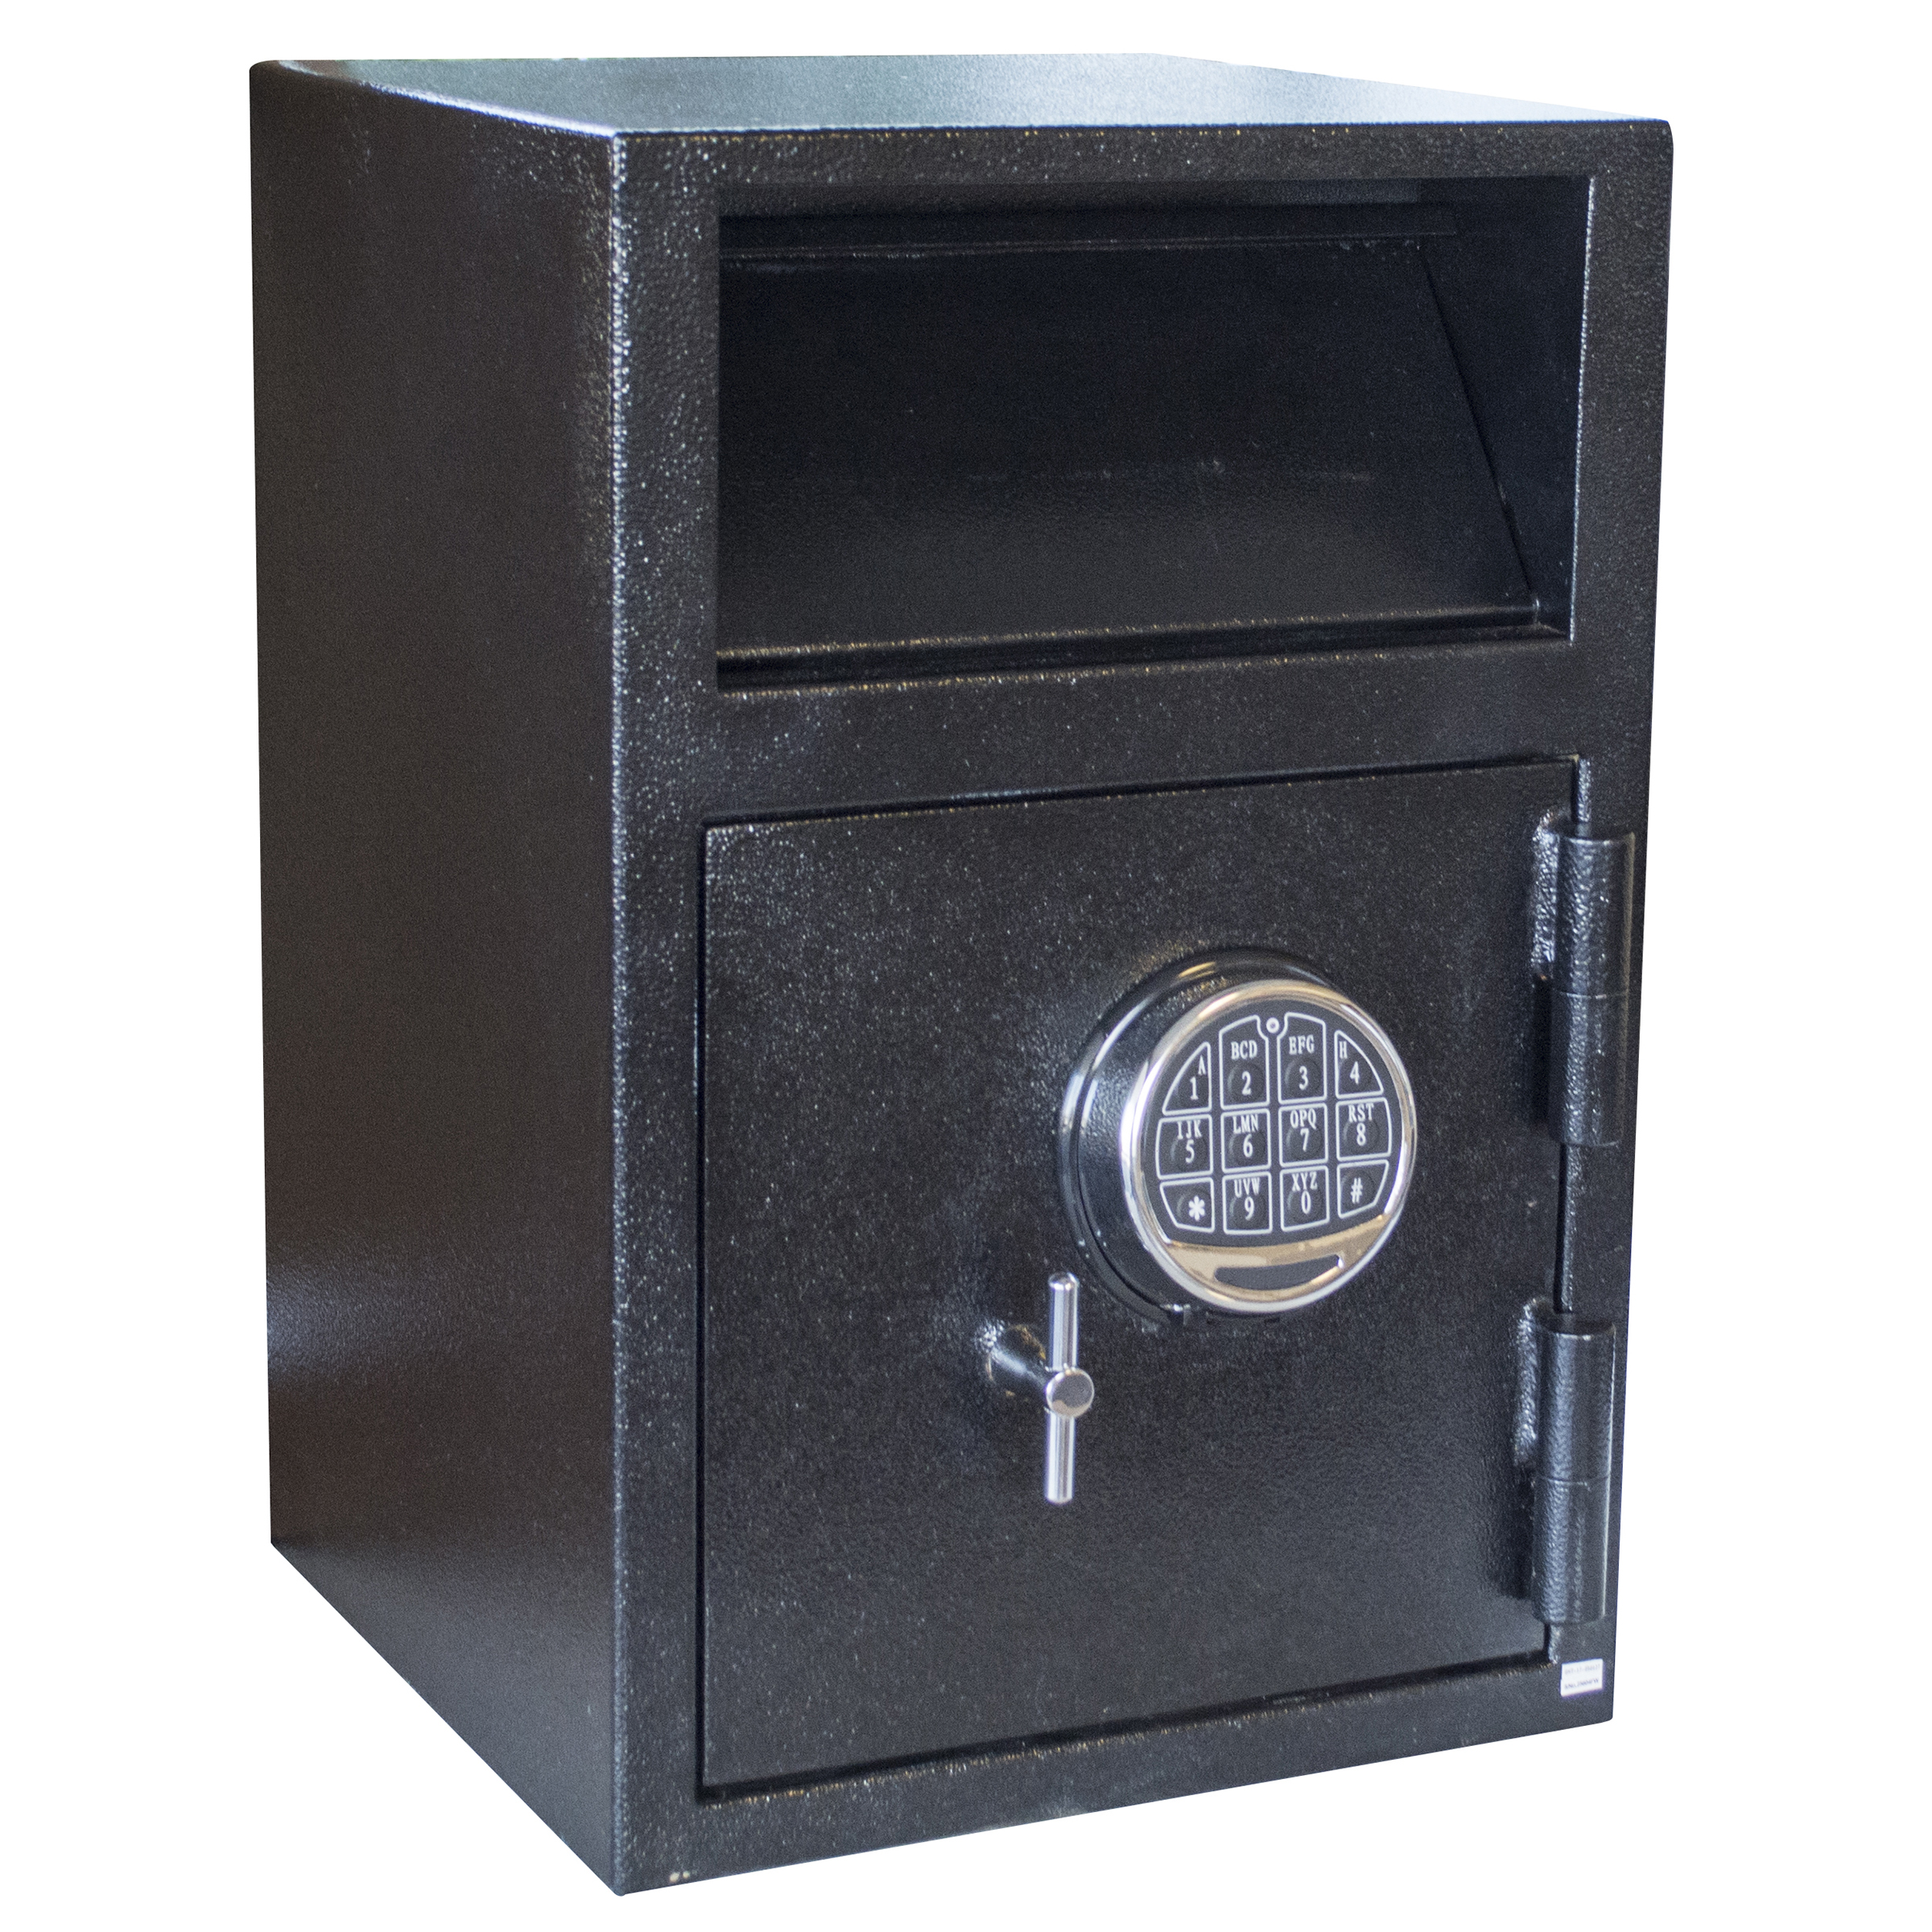 Deposit Drop Safe with Electronic Lock